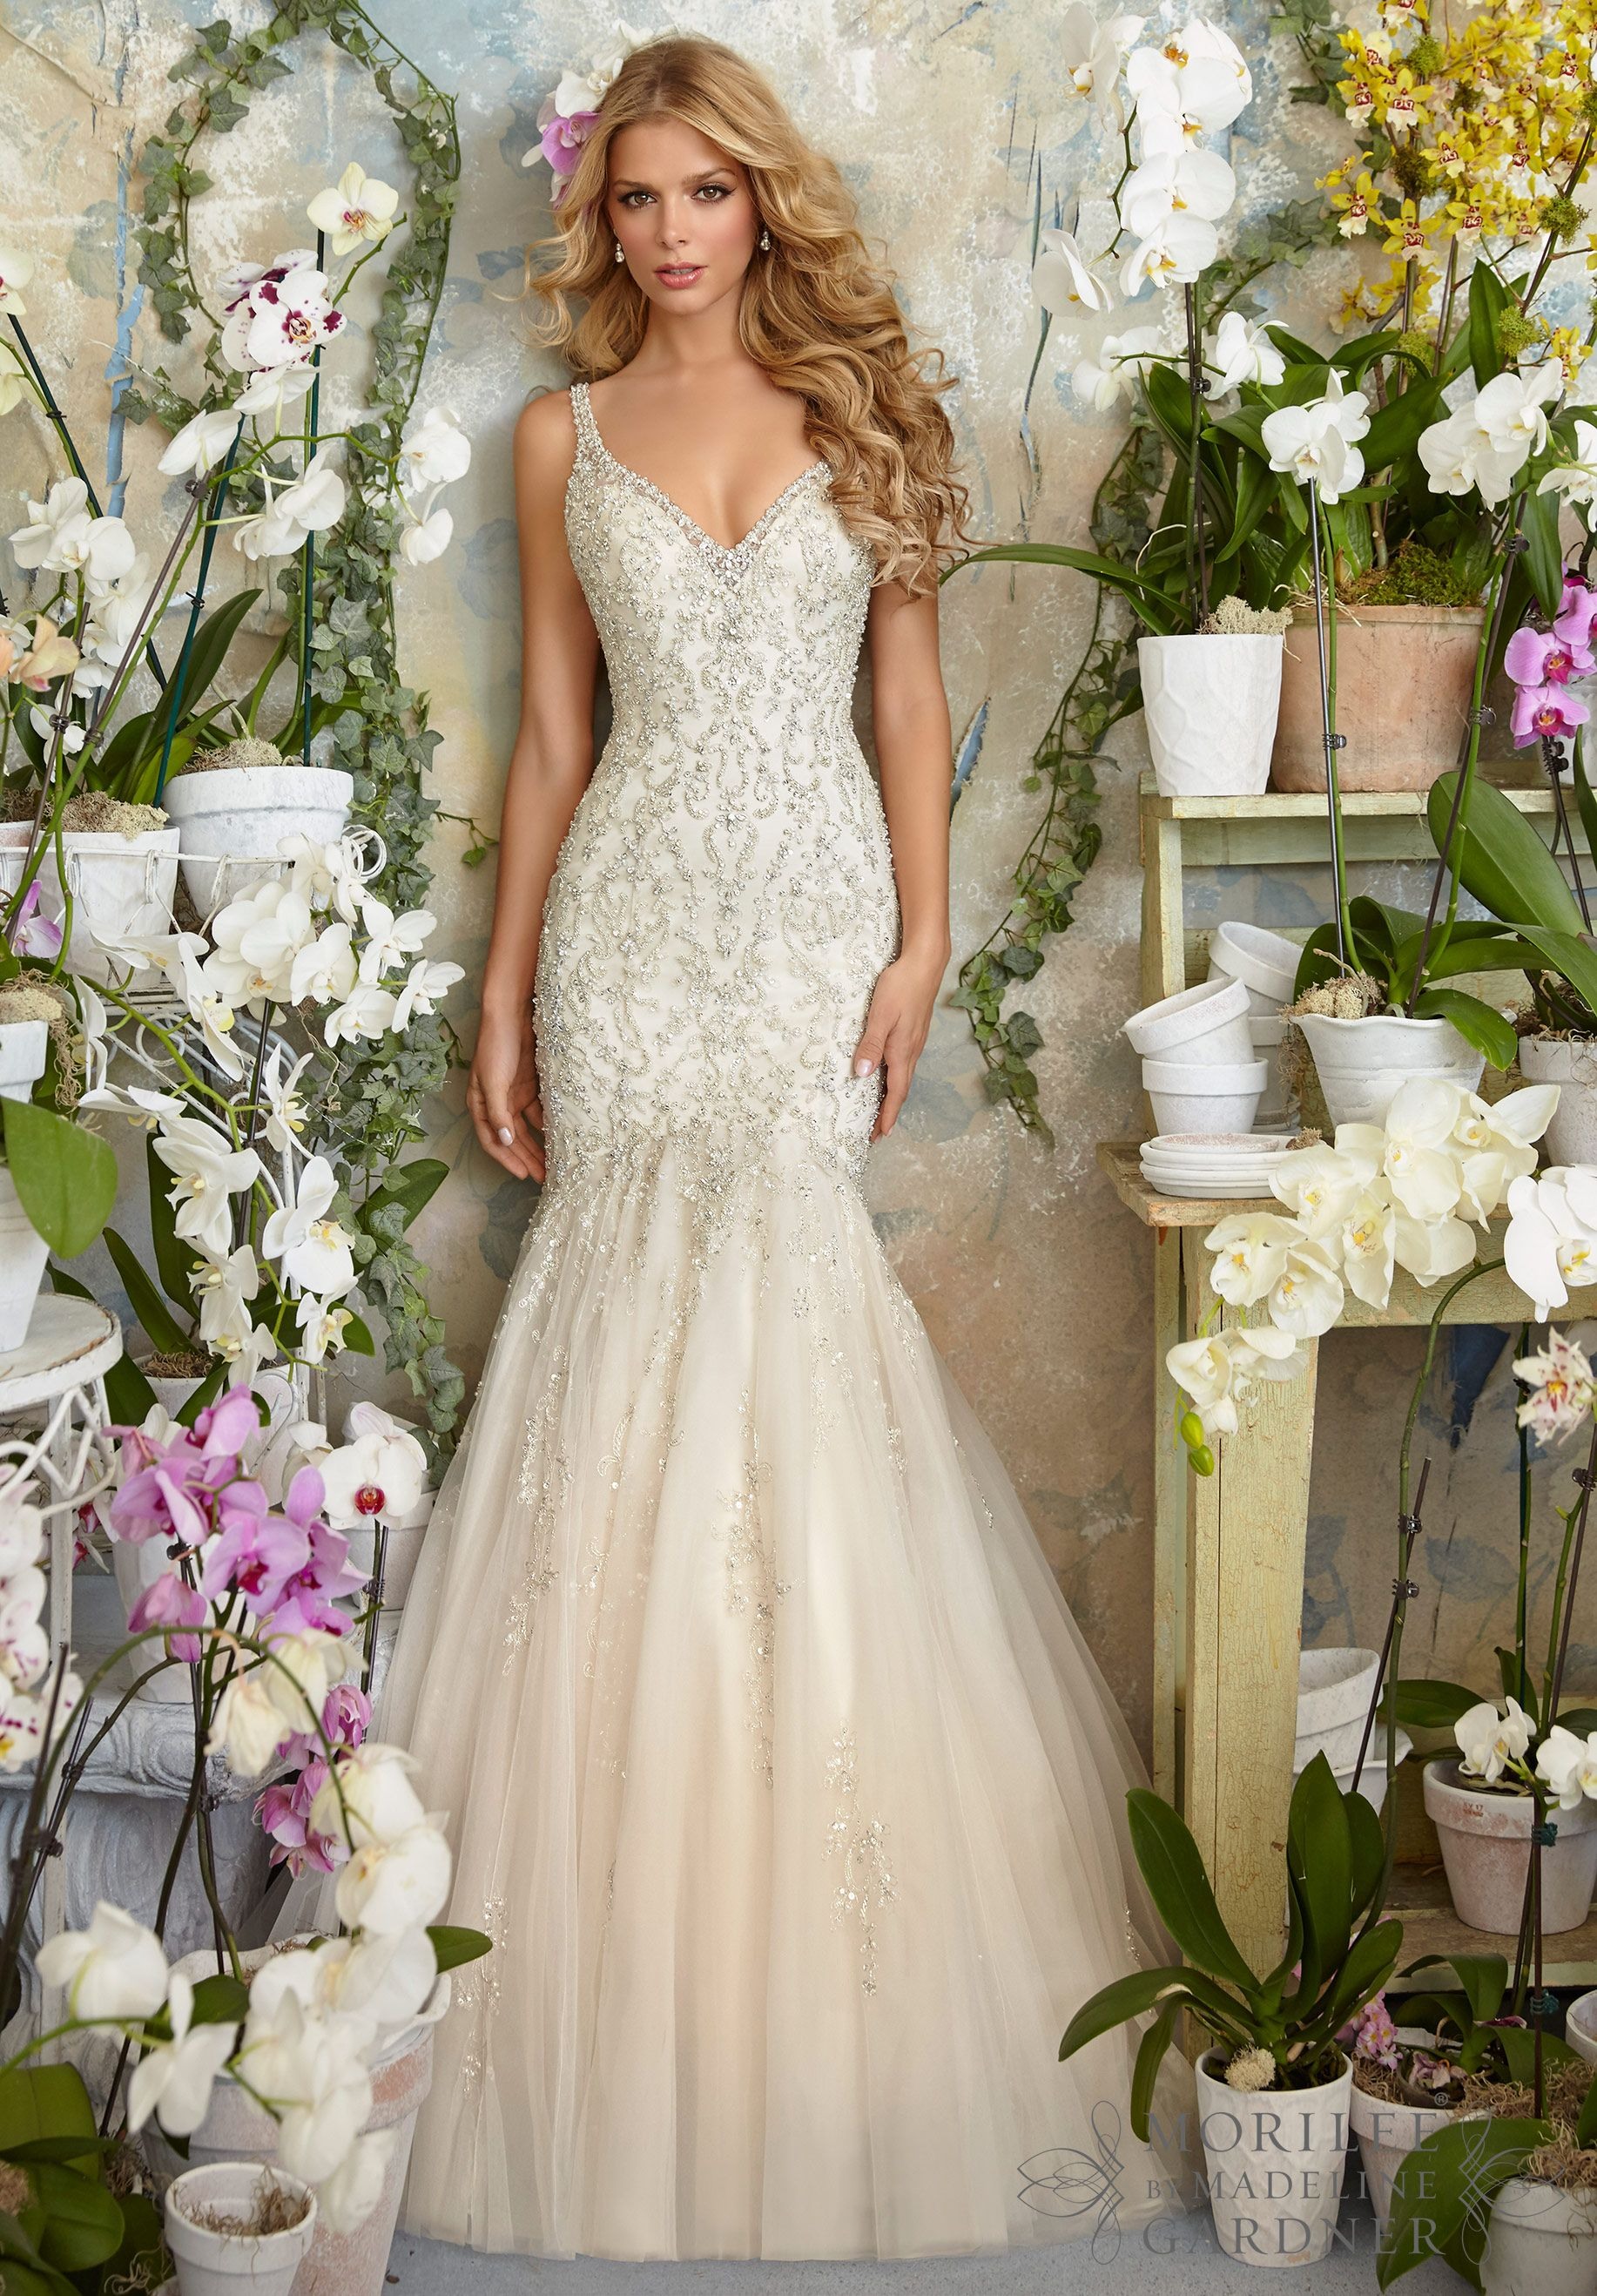 Wedding dresses bridal gowns wedding gowns by designer morilee